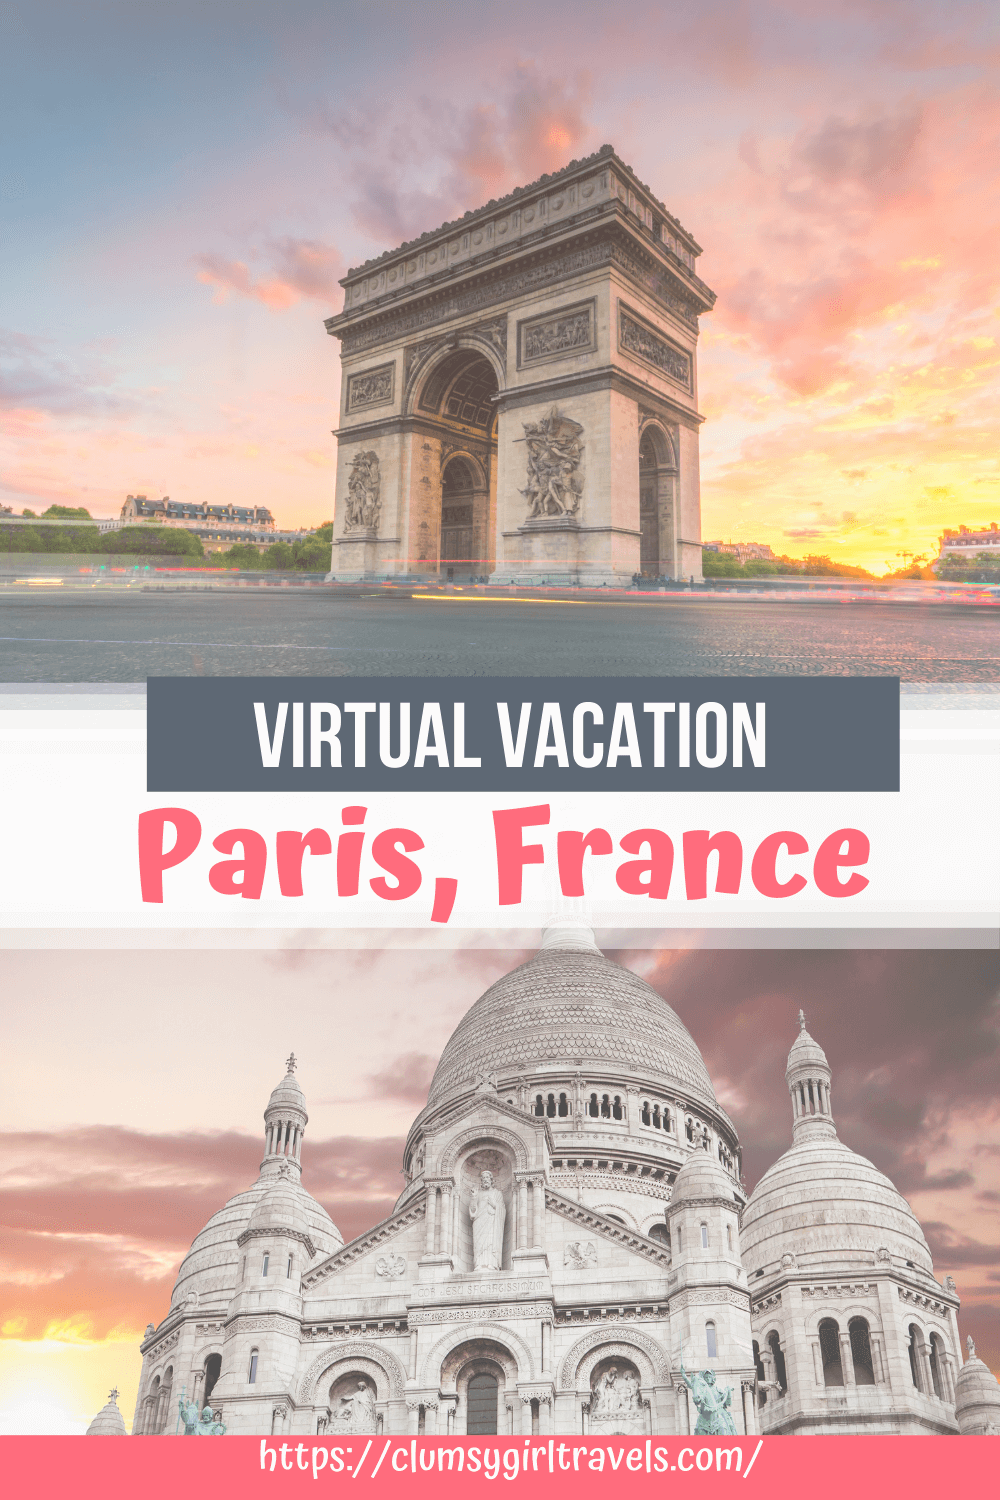 This virtual tour of Paris will take you around the city of lights through food, culture and so much more! You won't want to miss this virtual Paris tour.